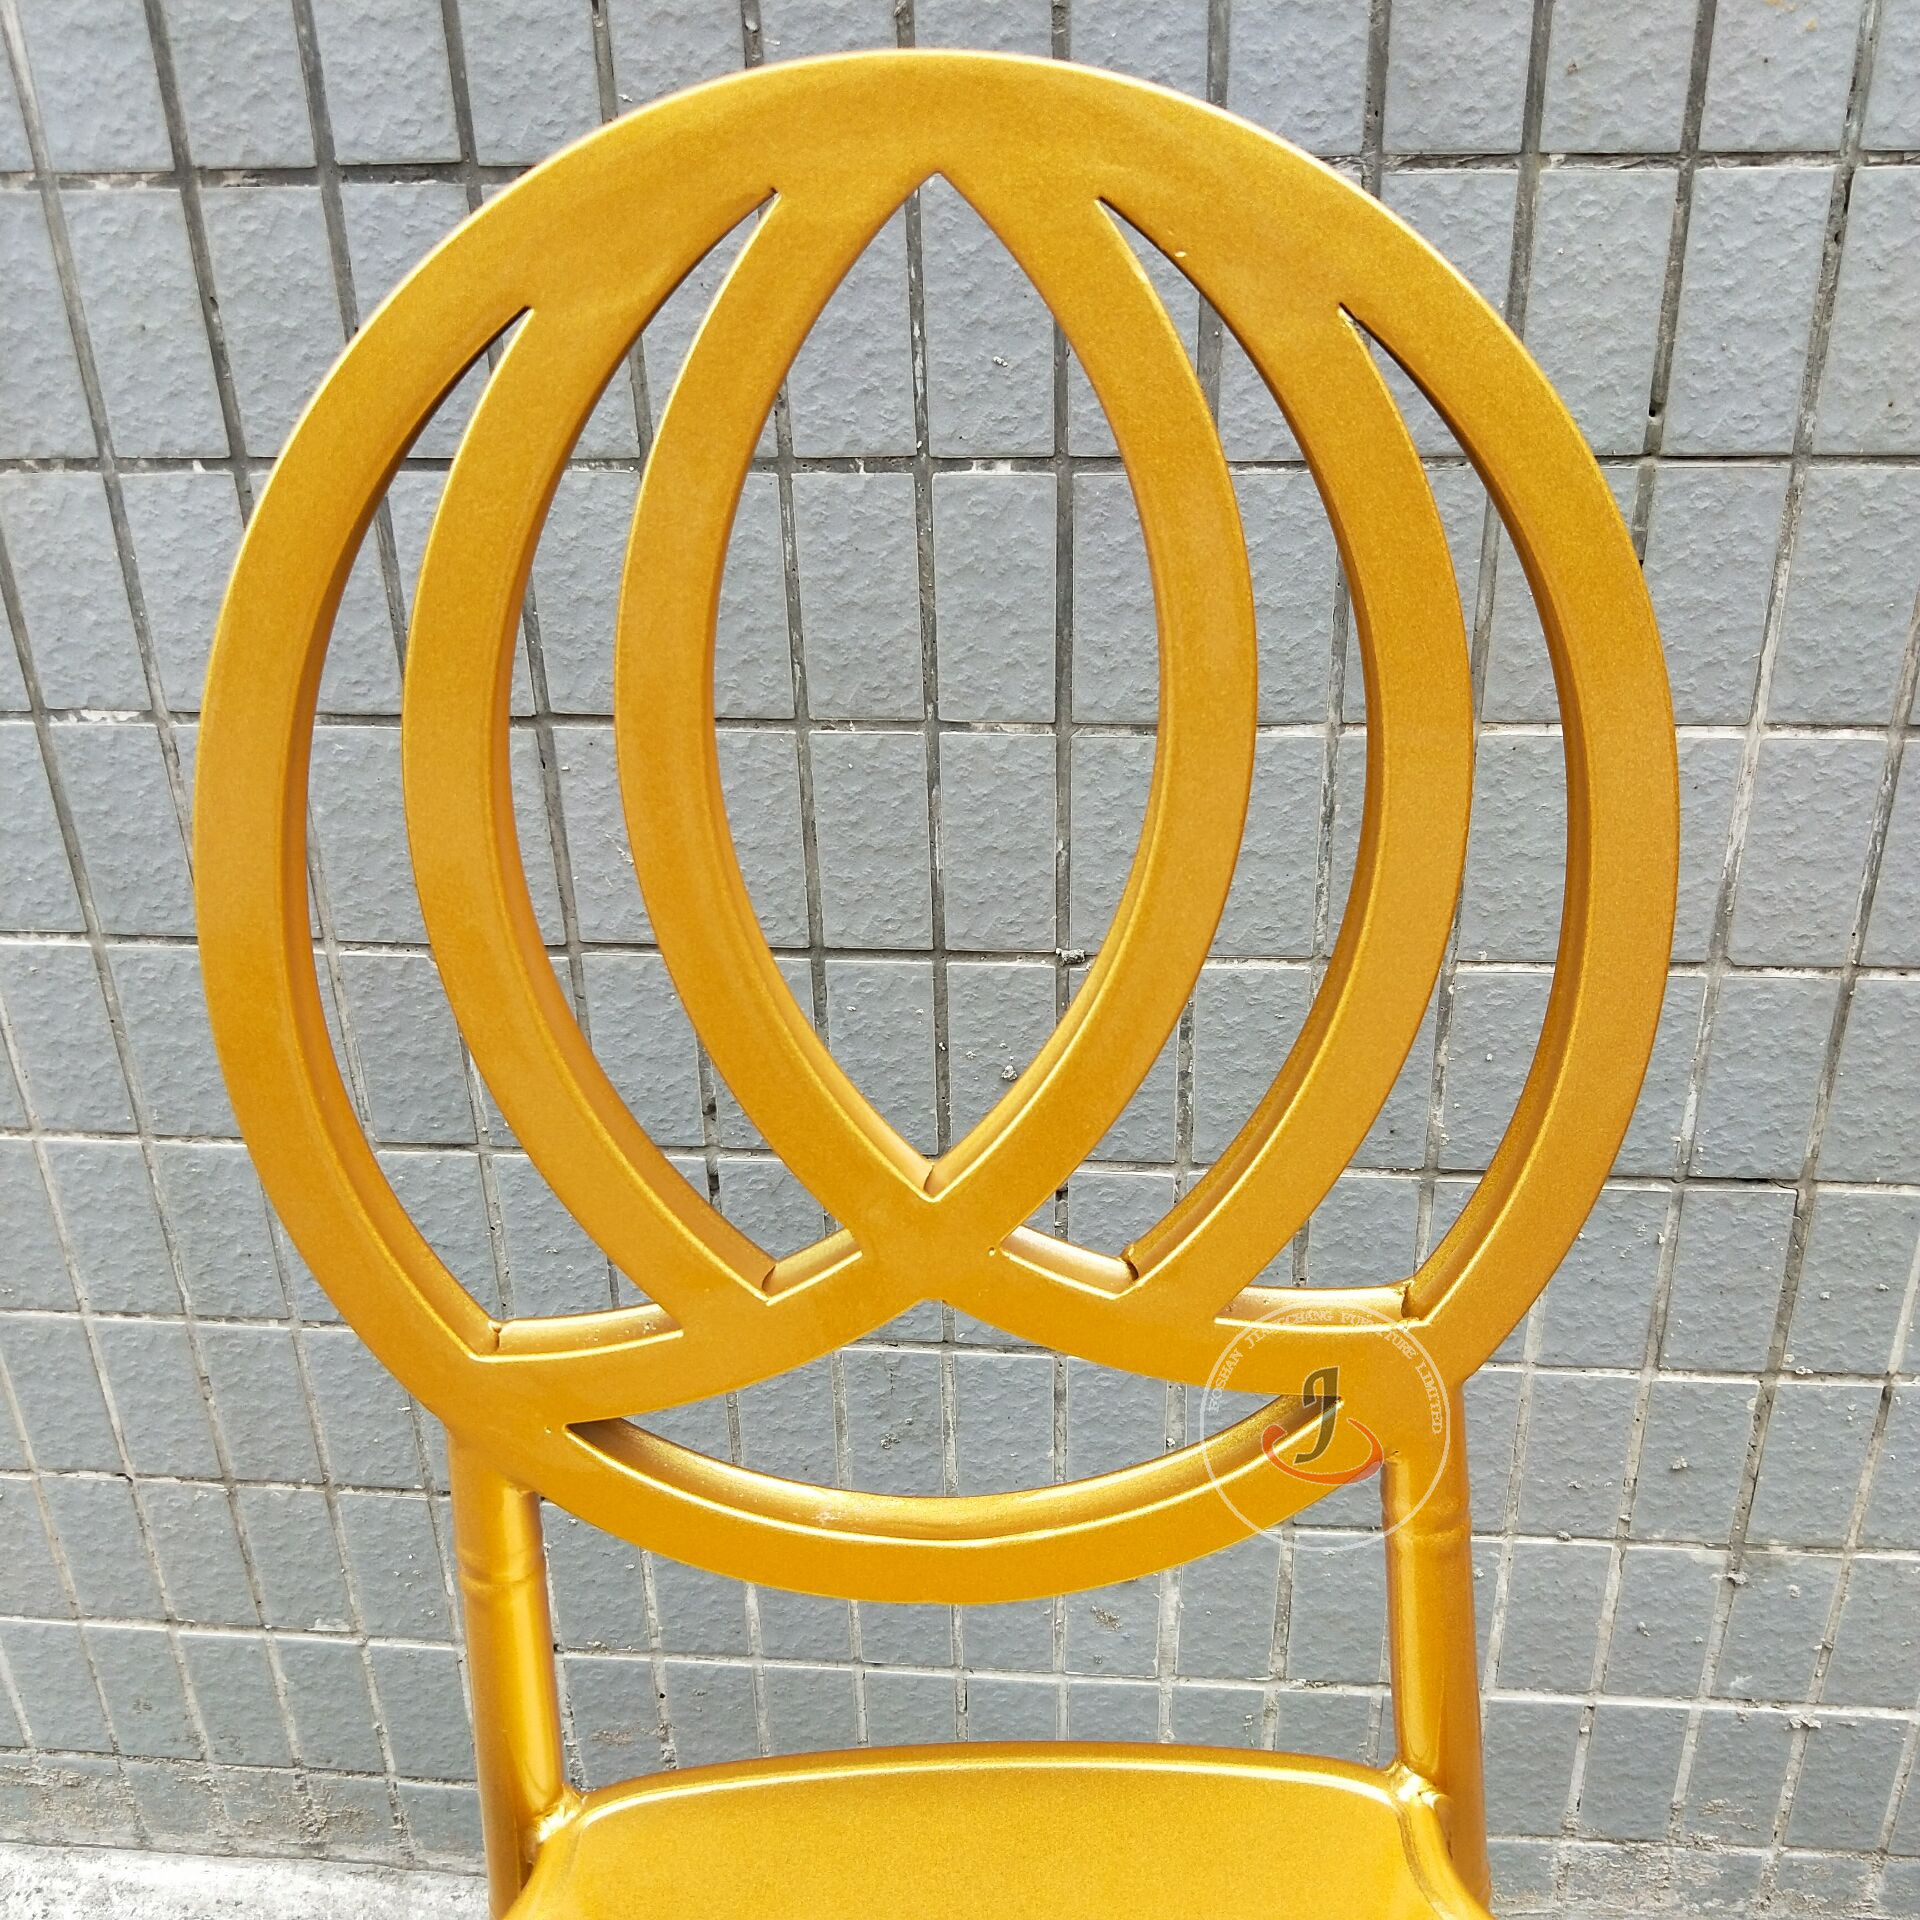 Low MOQ for Connector Church Chair -